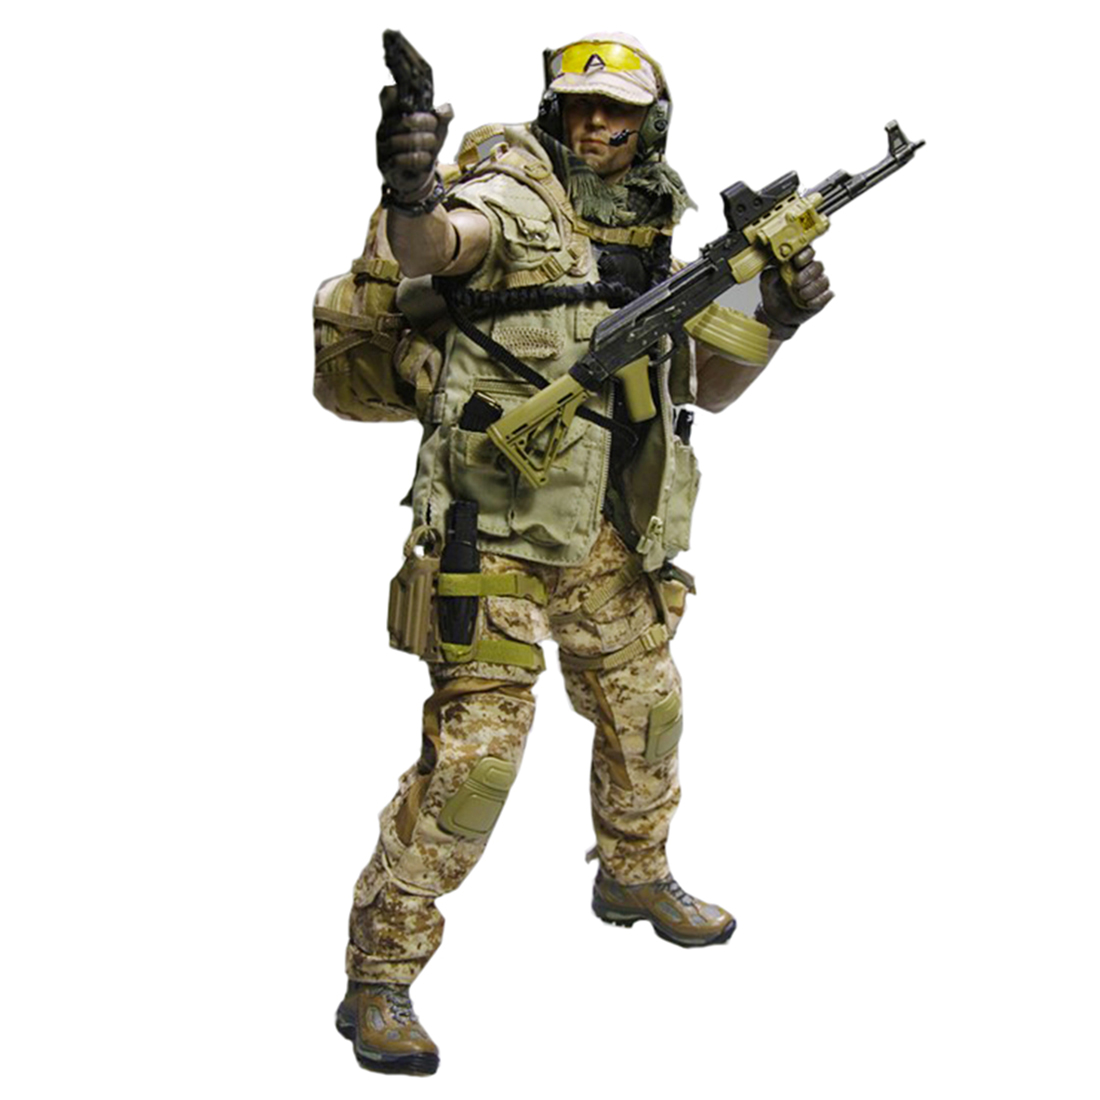 MODIKER VeryHot Soldier Model Suit PMC New Mercenary Clothes Equipment for 1/6 12 Inches Soldier Model Action FigureMODIKER VeryHot Soldier Model Suit PMC New Mercenary Clothes Equipment for 1/6 12 Inches Soldier Model Action Figure